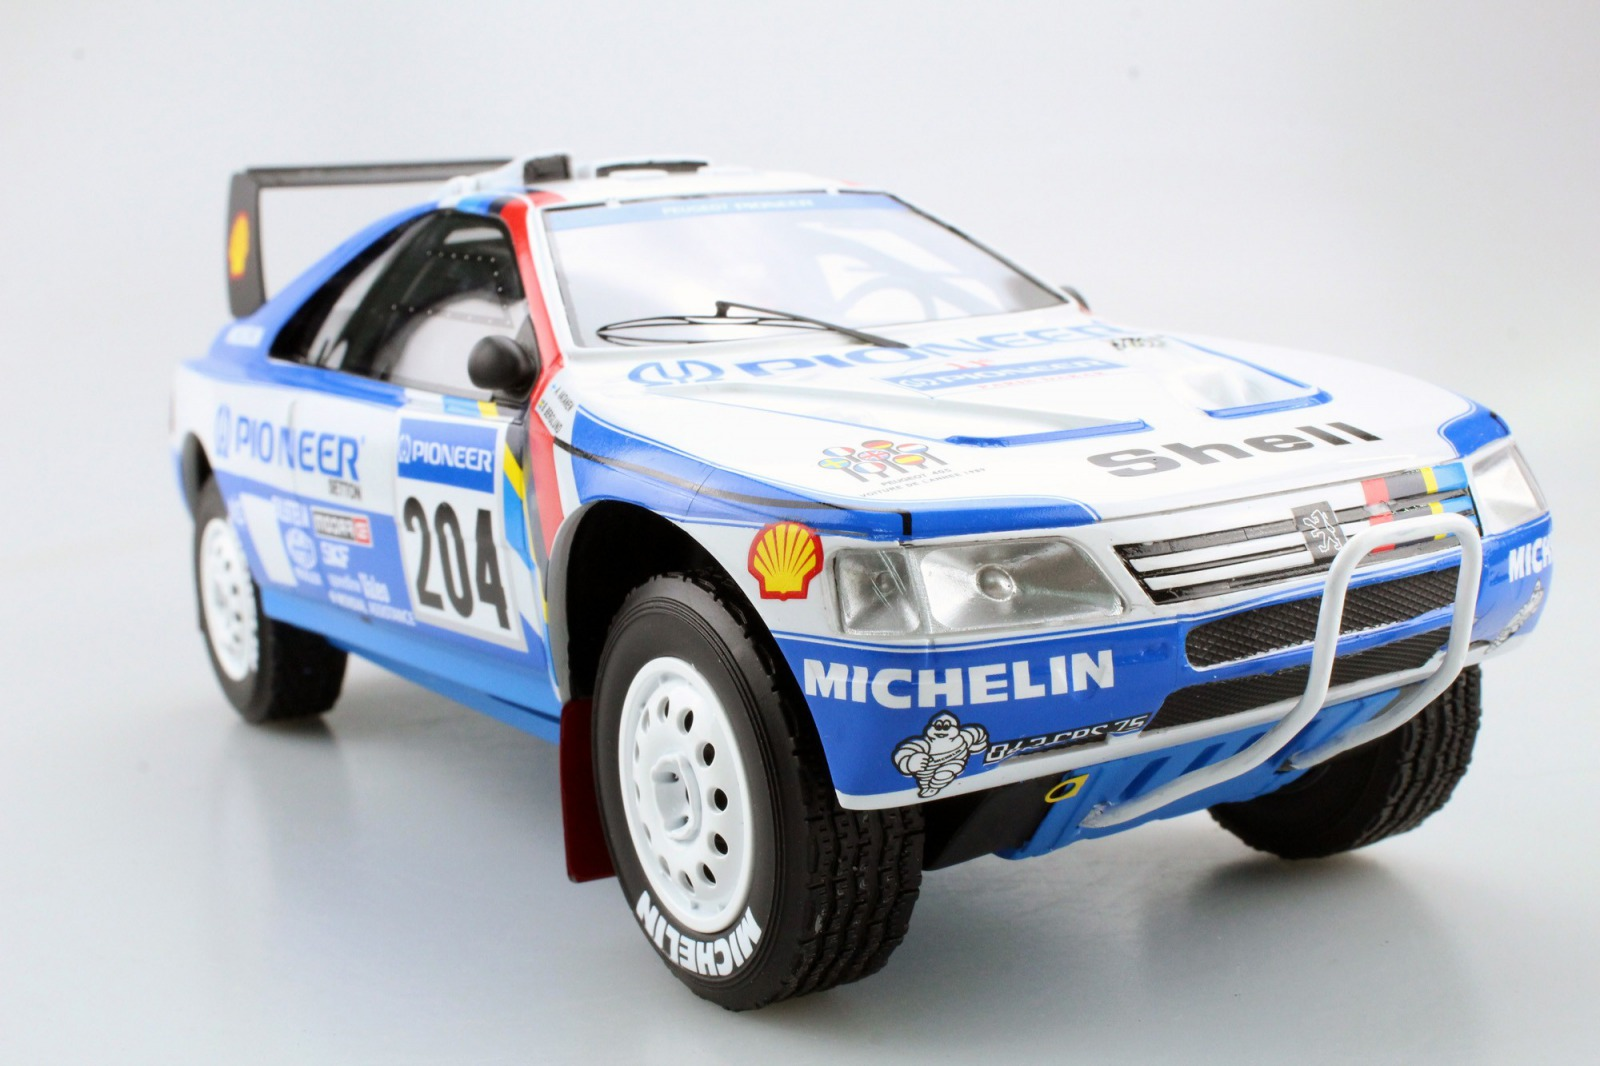 Top Marques トップマルケス 1:18 1989年ラリー・パリダカ 優勝モデル プジョー 405 Turbo 16 No.204PEUGEOT - 405 TURBO 16 (T-16) N 204 WINNER RALLY PARIS DAKAR DIRTY VERSION 1989 A.VATANEN - B.BERGLUND 1/18 by Top Marques EUR